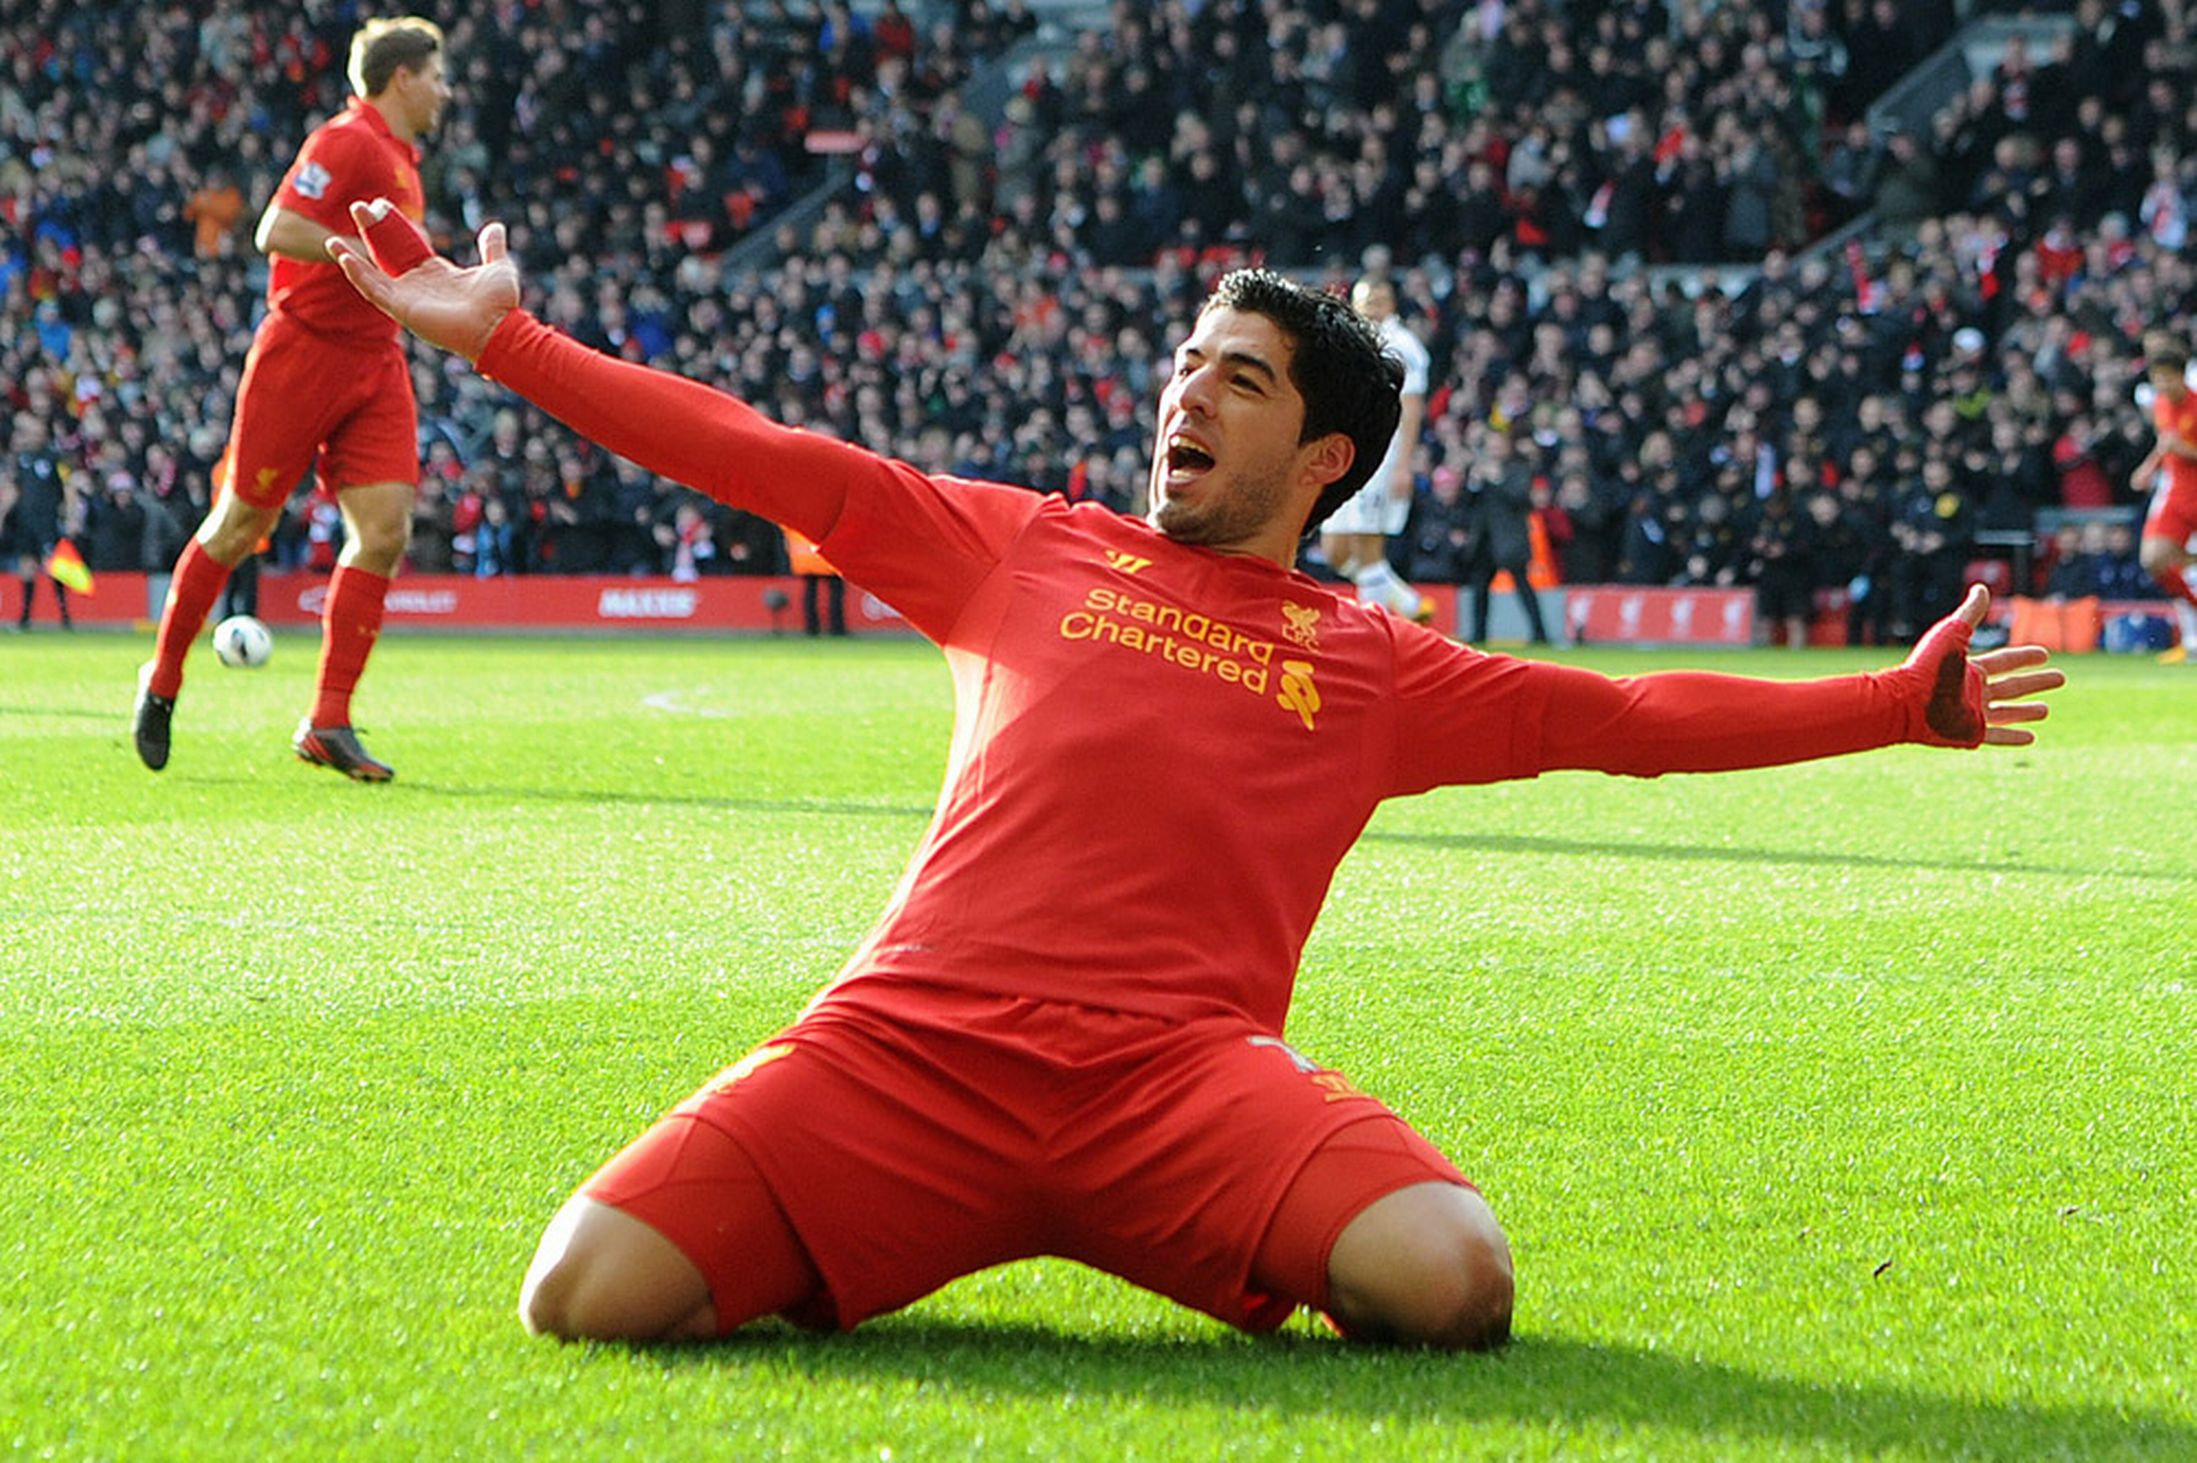 Luis-Suarez-of-Liverpool-1903958